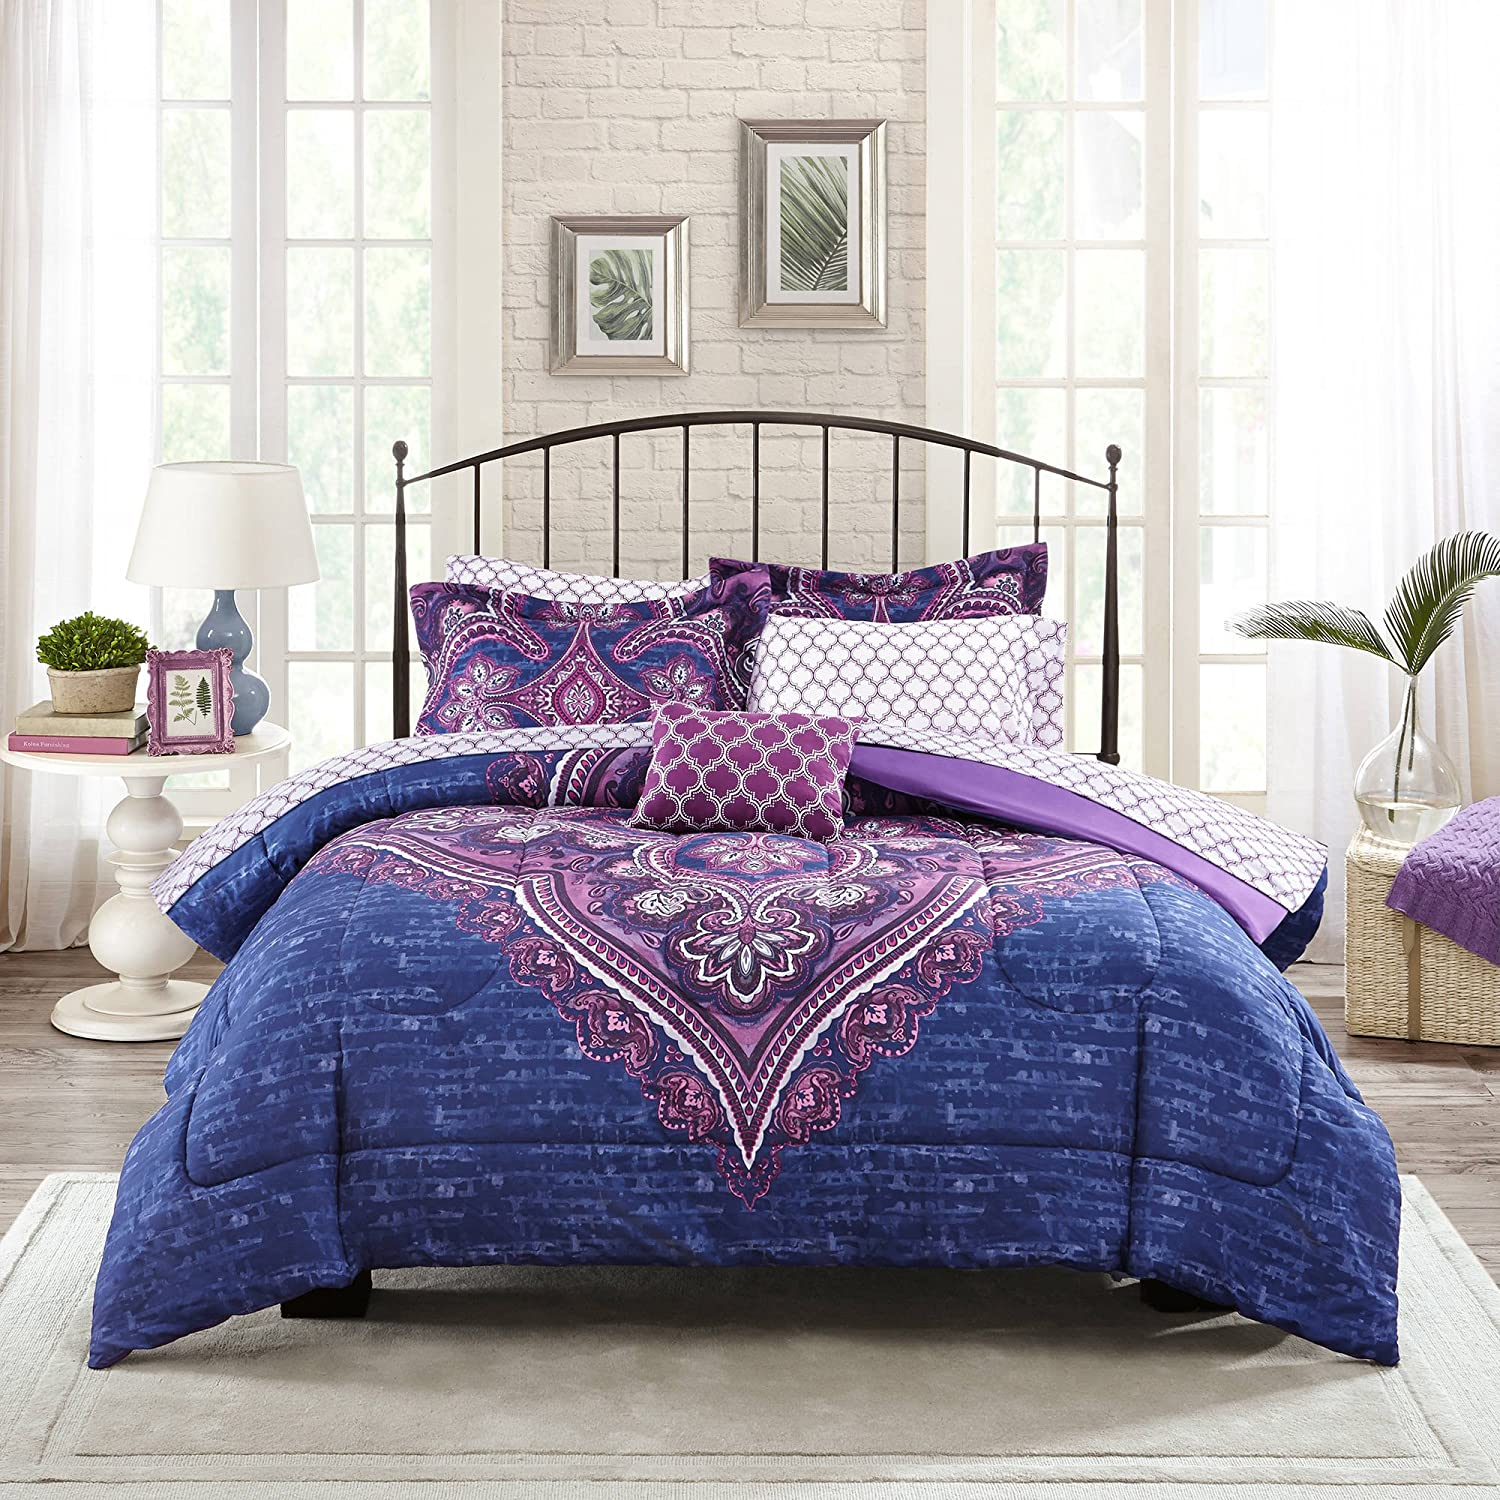 Mainstays Teens' Grace Purple Floral Reversible Medallion Bedding Queen Comforter Sets for Girls 7 Piece in a Bag